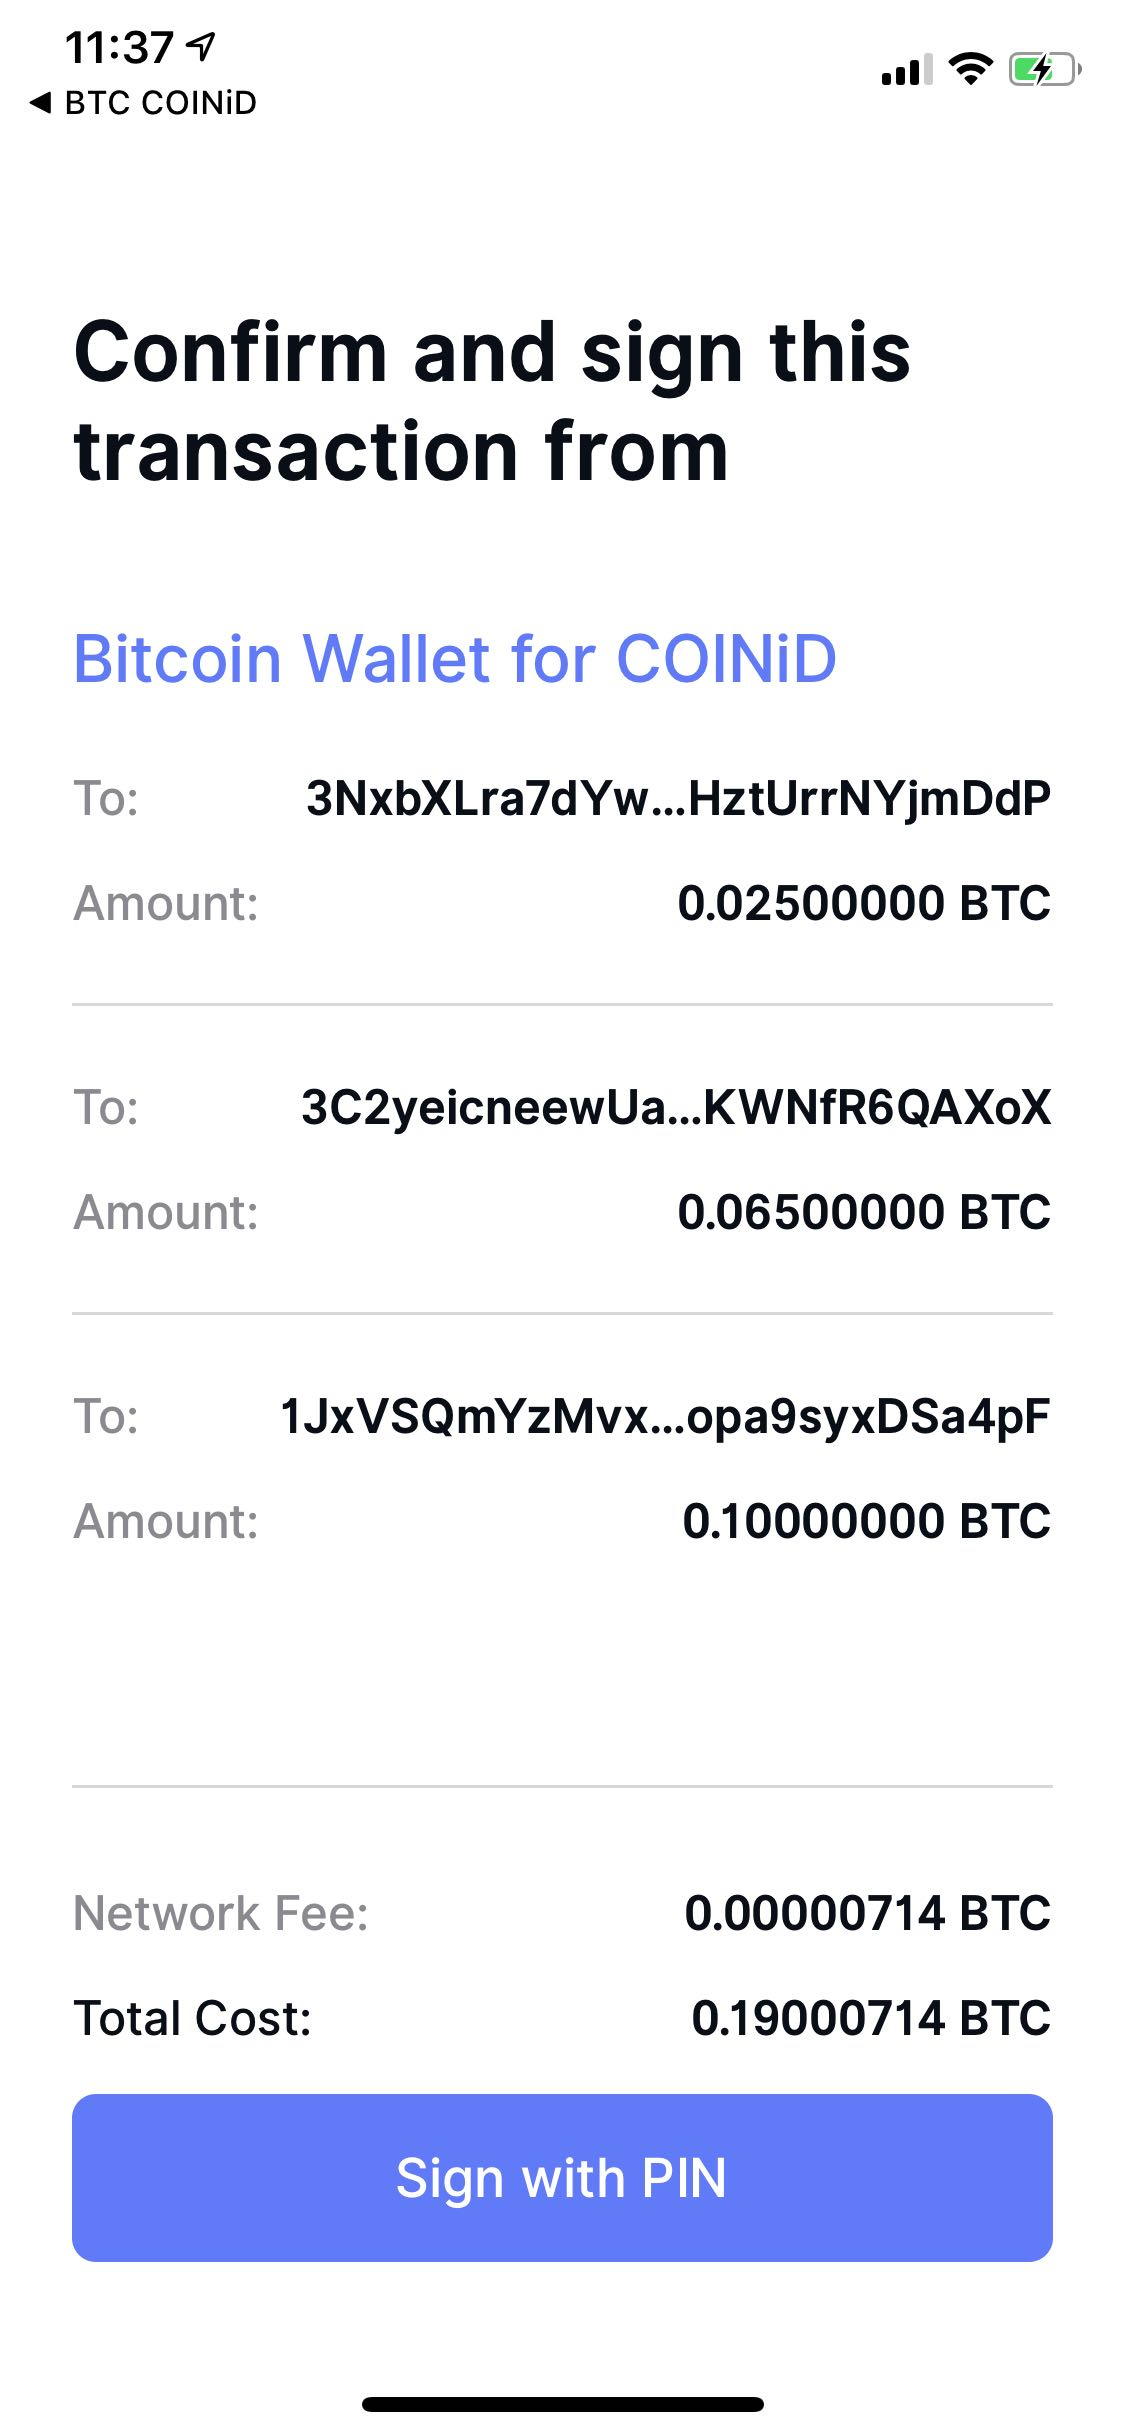 Batched transactions make it much easier!